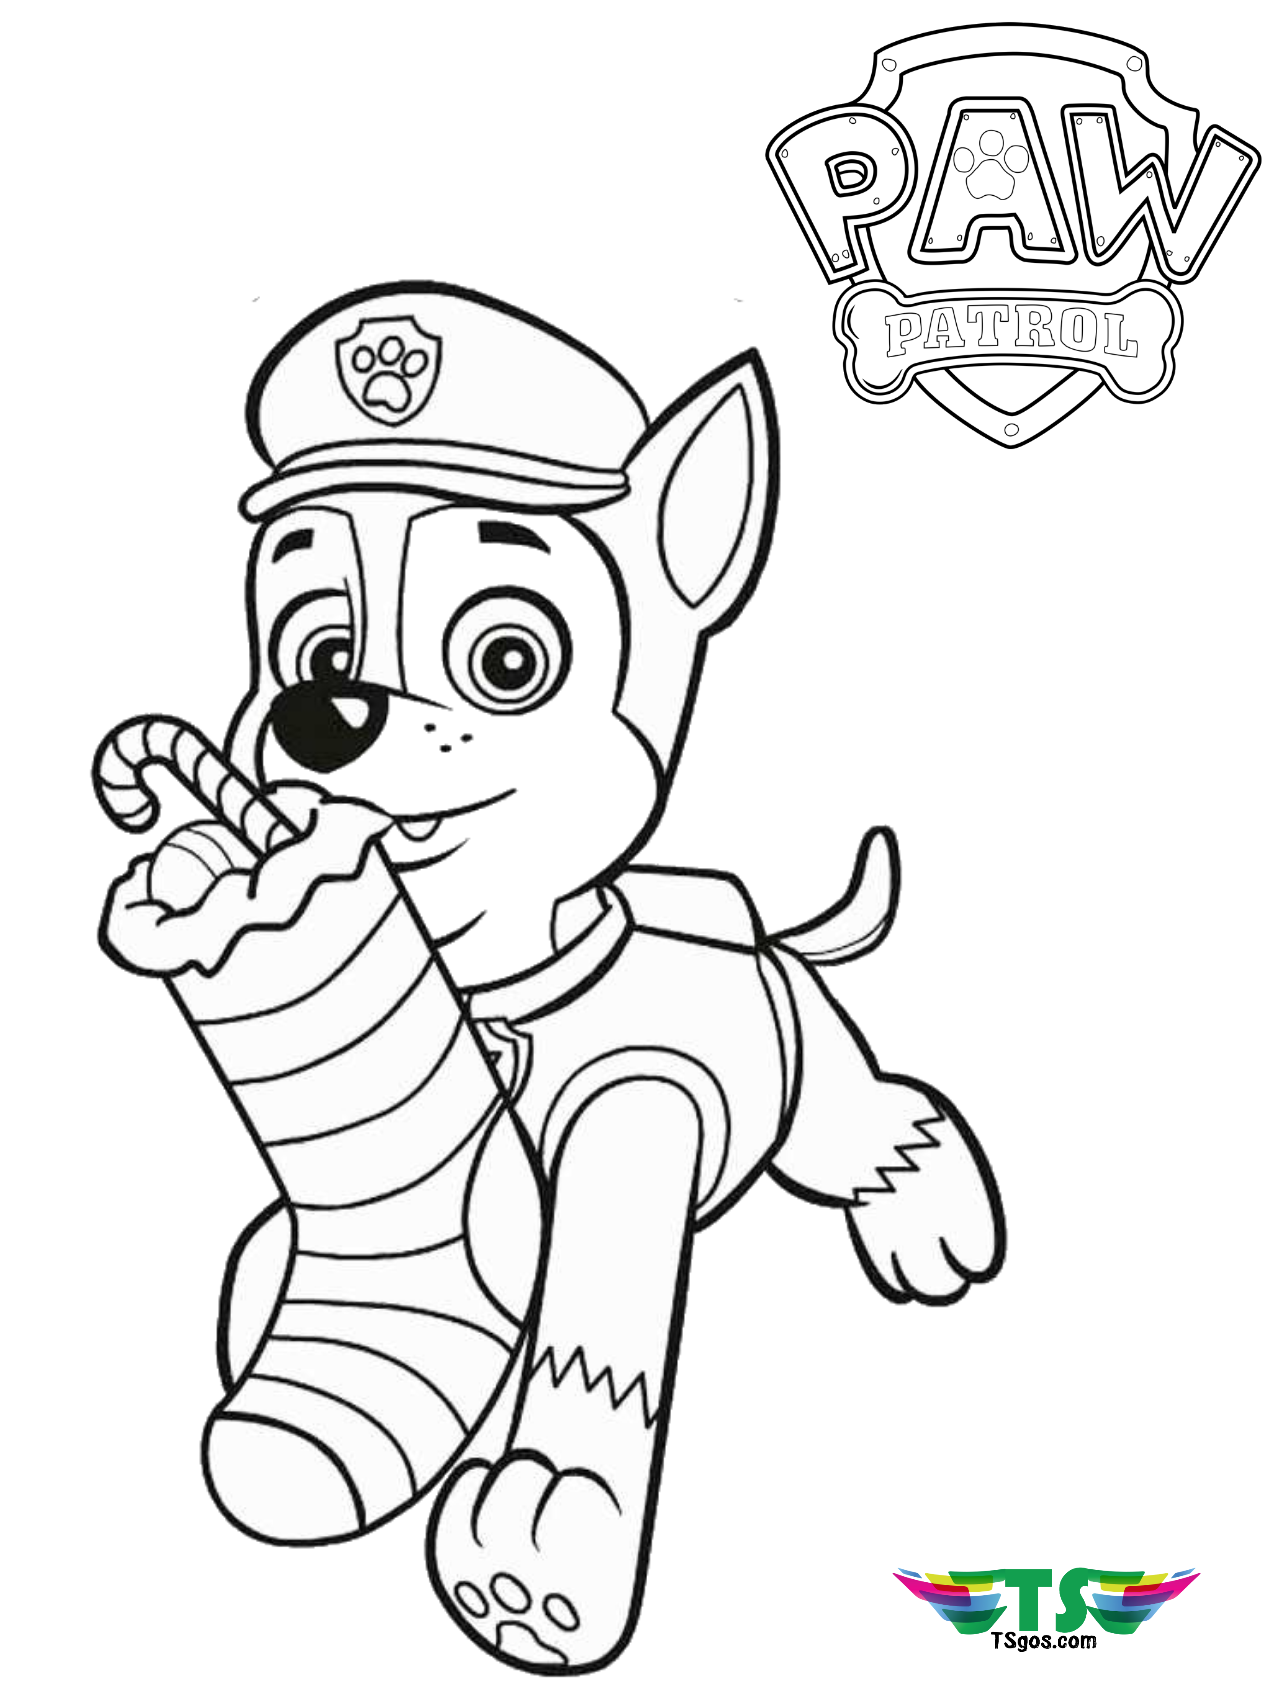 paw patrol coloring pages marshall paw patrol coloring lesson kids coloring page coloring patrol pages paw